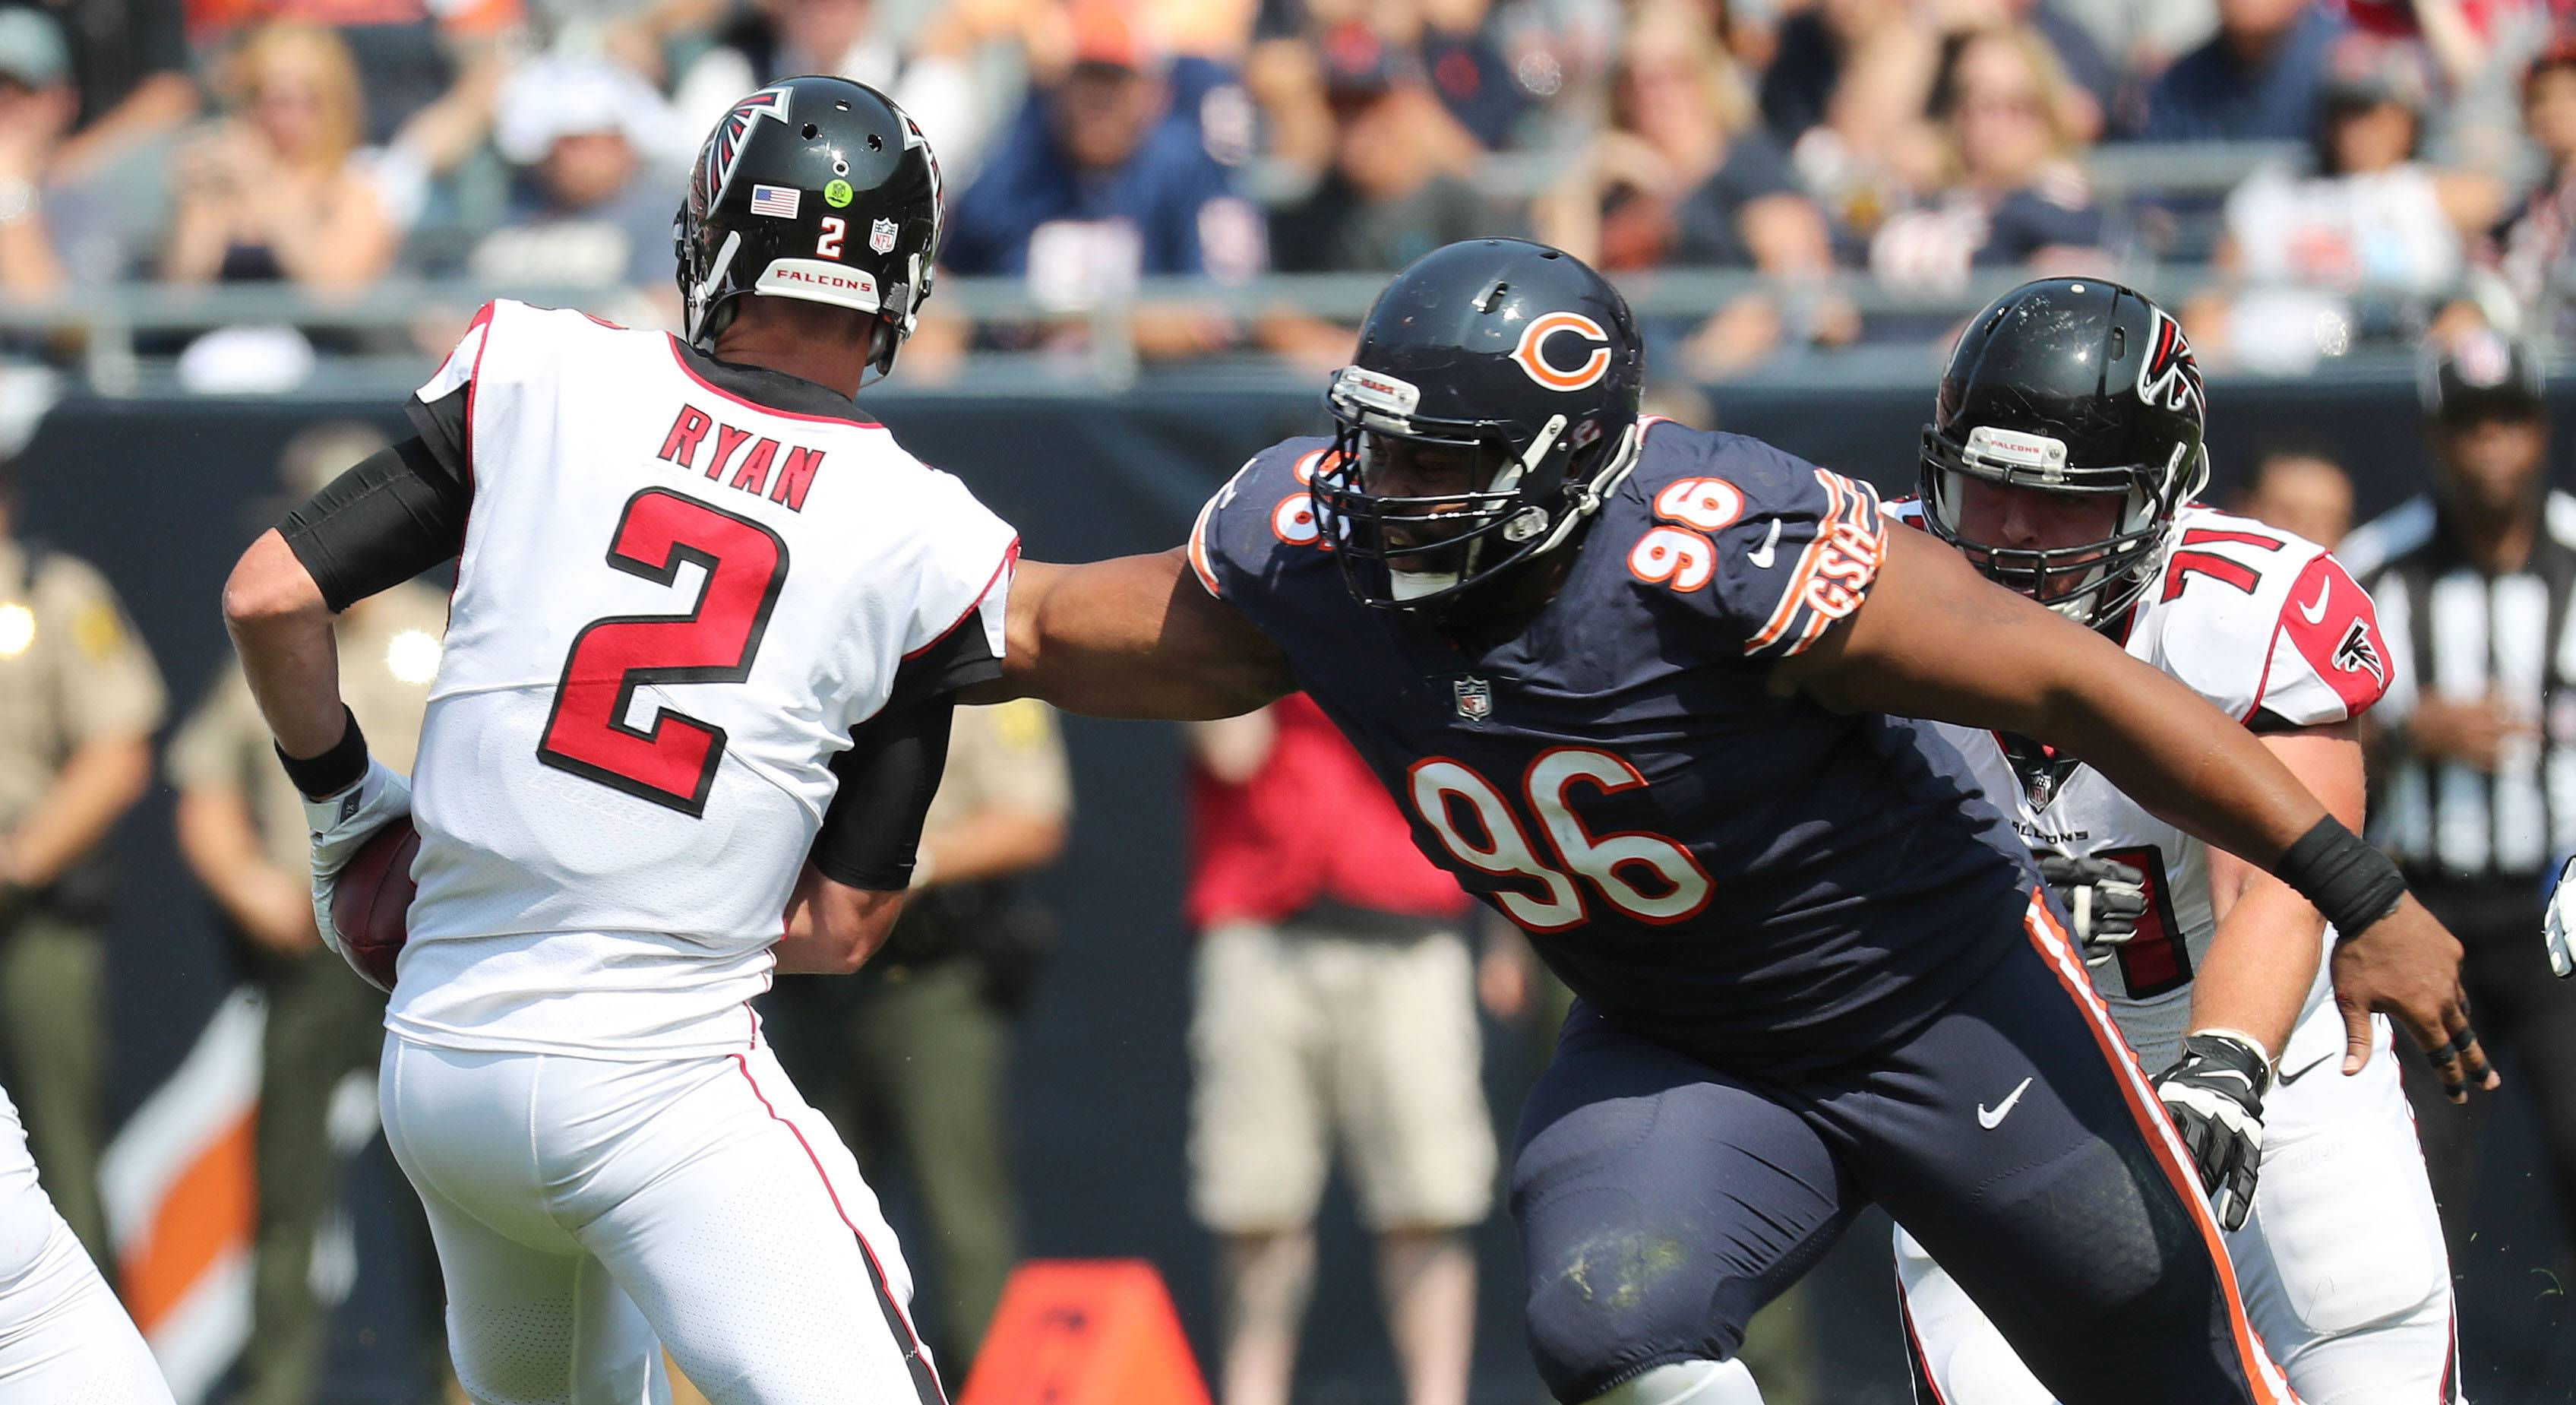 Will Hicks finally end Bears' drought of Pro Bowl defenders?